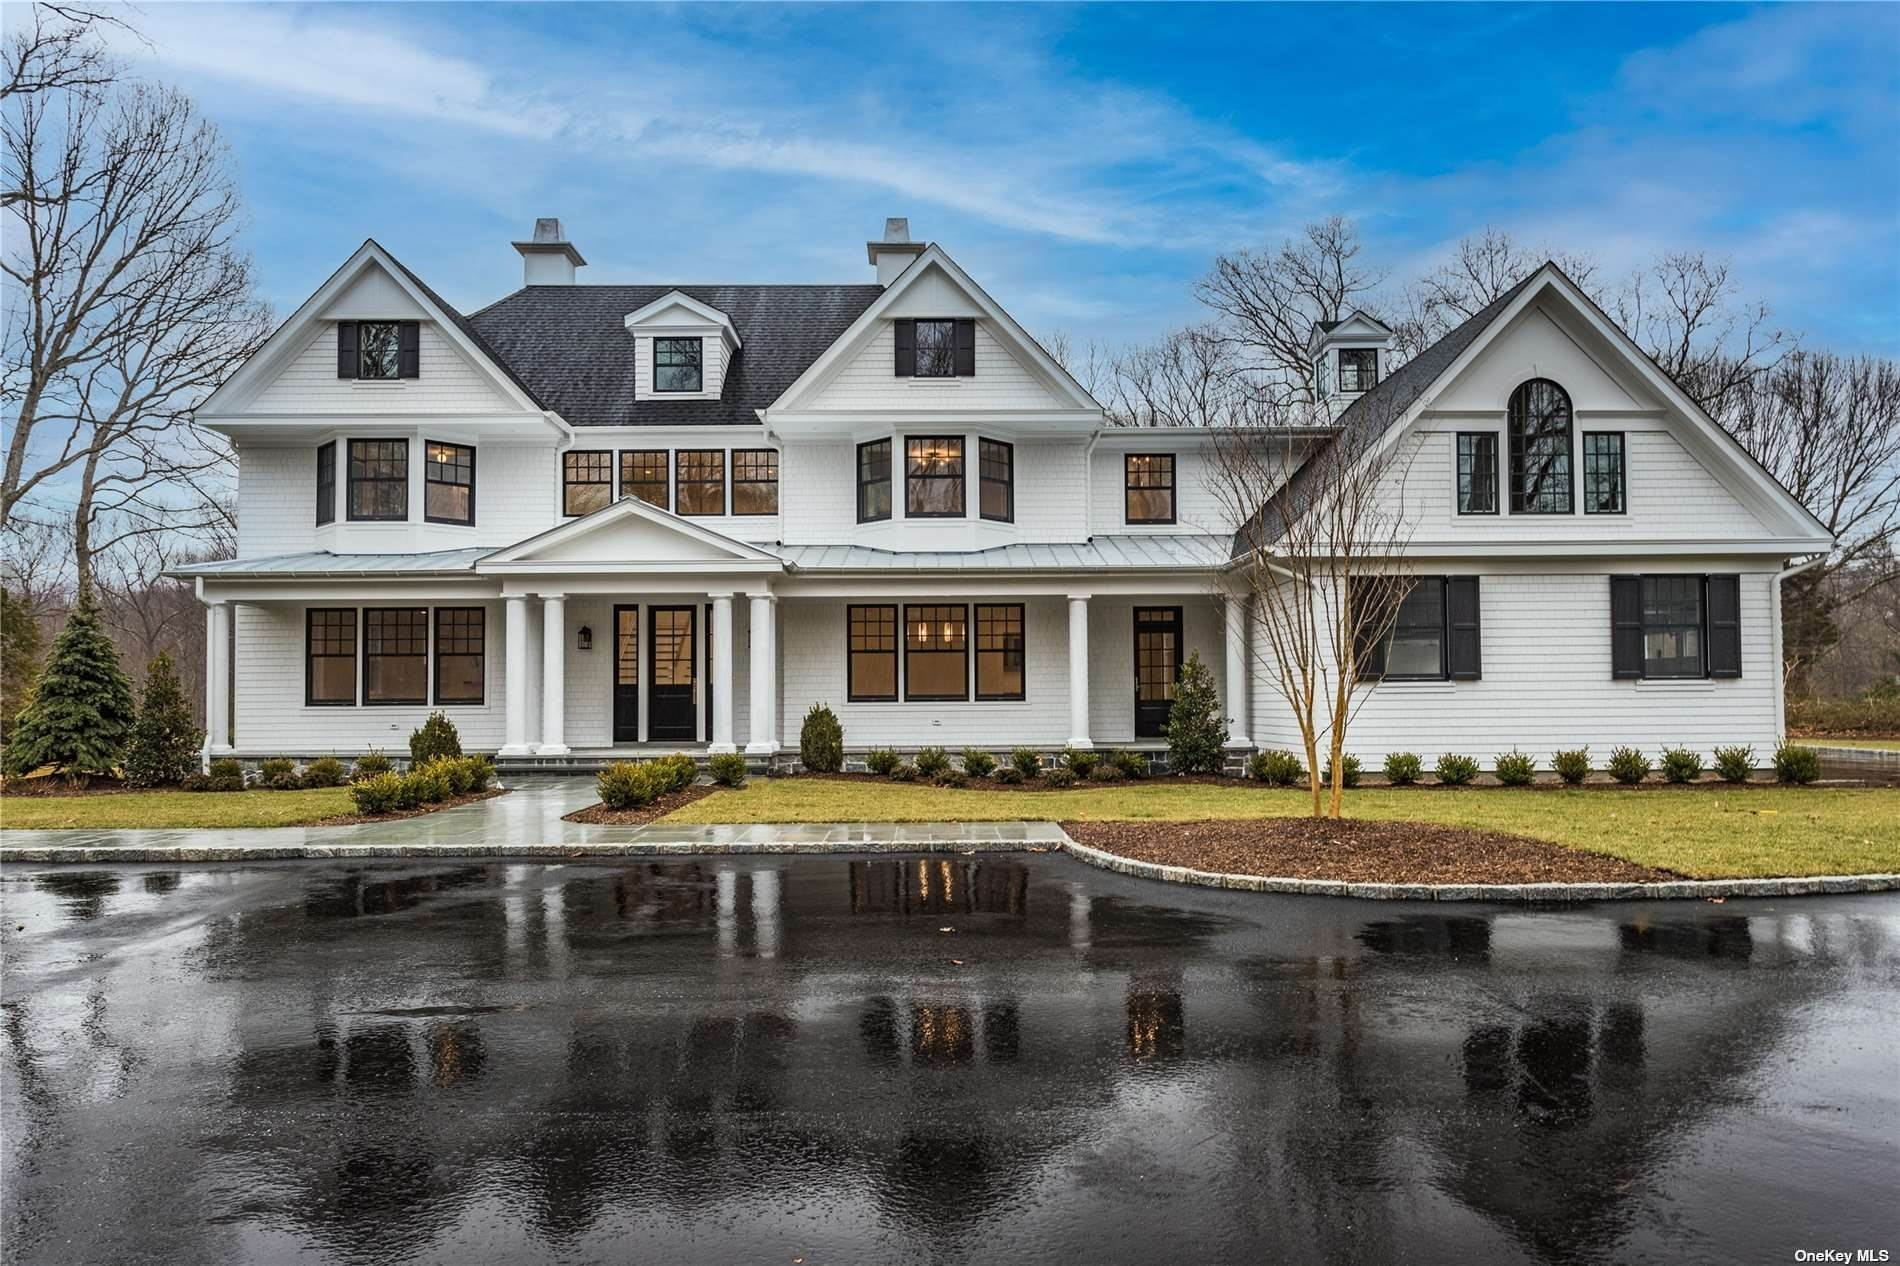 Residential for Sale at 115 Tall Oak Cresc, Oyster Bay Cove, NY 11791 Oyster Bay Cove, New York 11791 United States